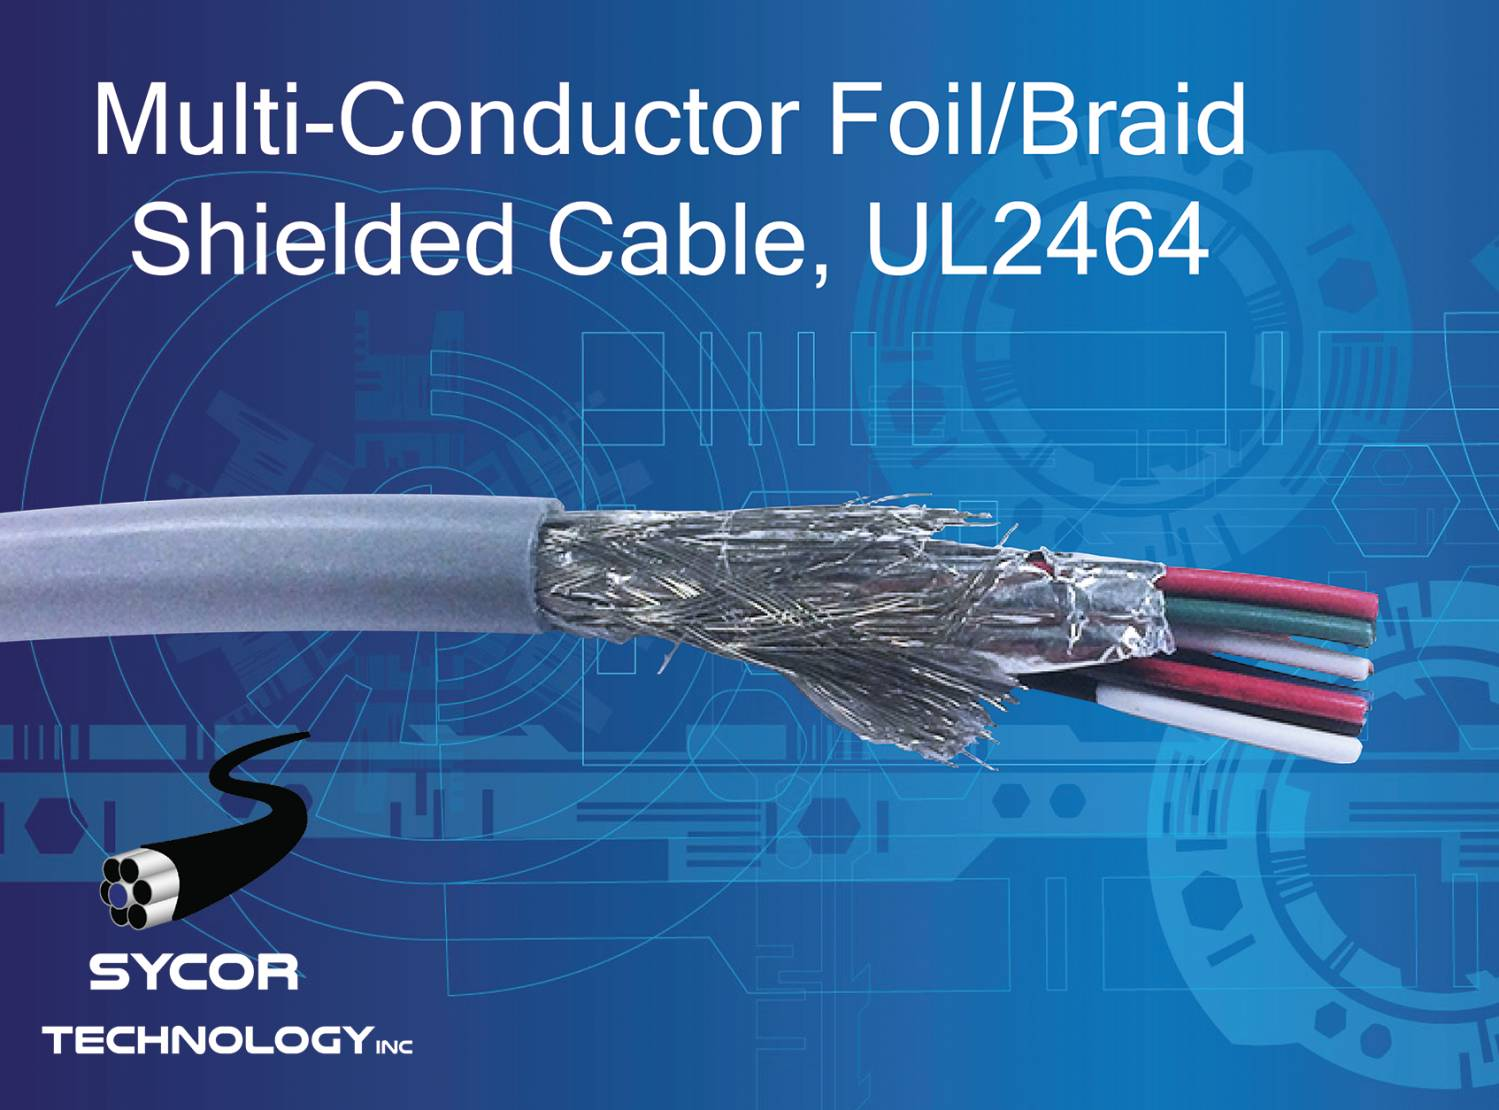 Multi-Conductor Foil/Braid Shielded Cable, UL2464